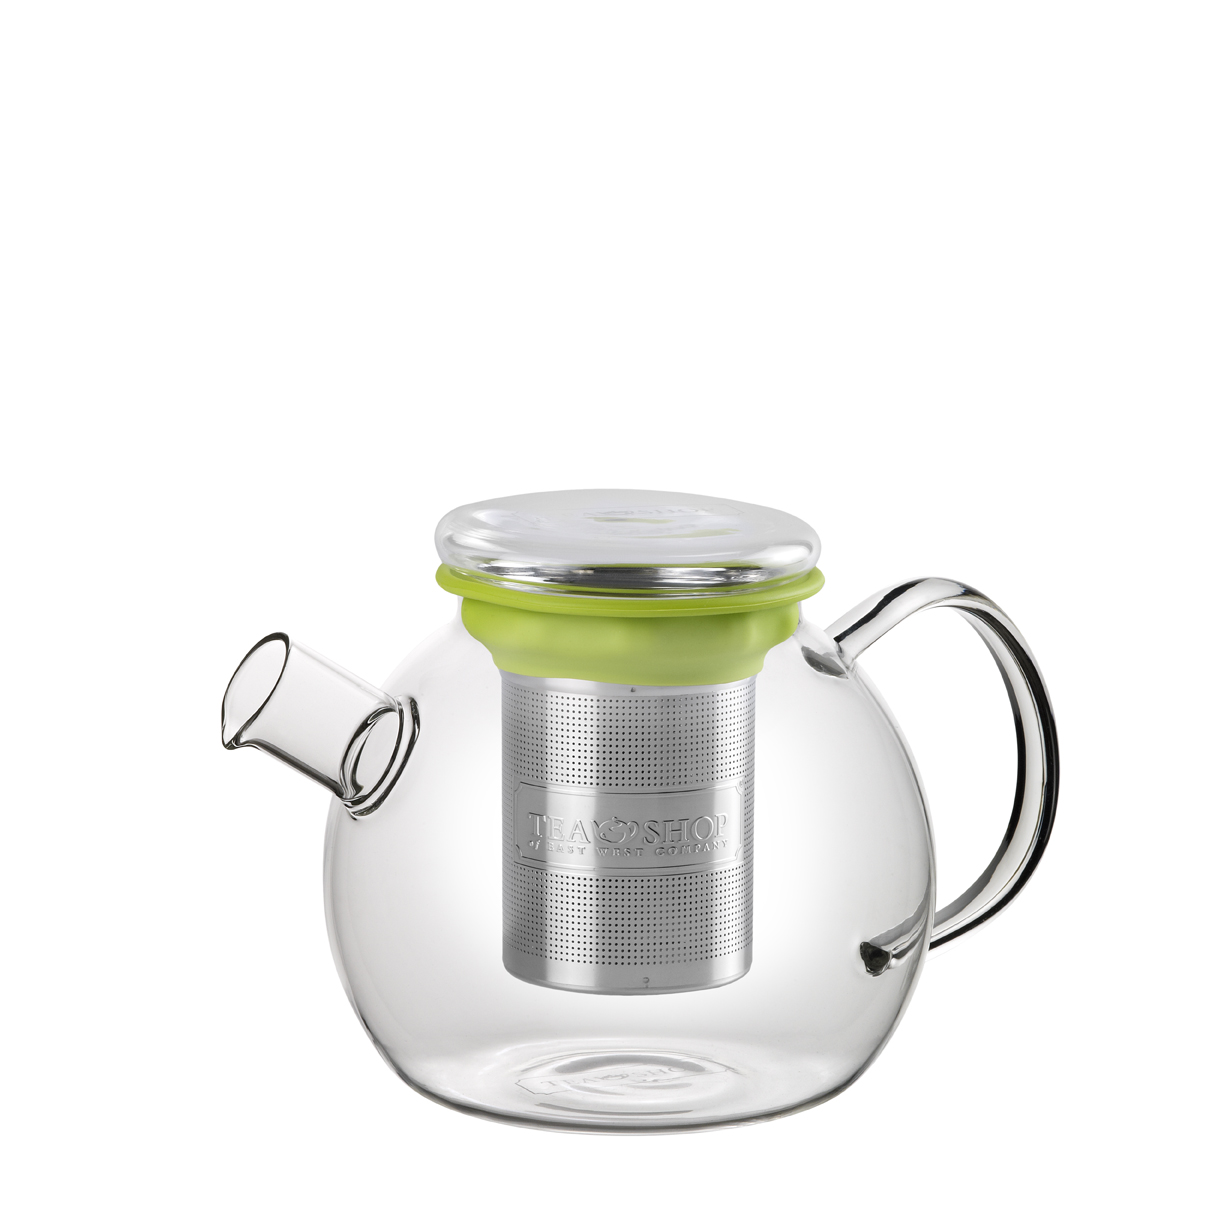 All in One Teapot Green 1l. Bules de vidro Tea Shop®